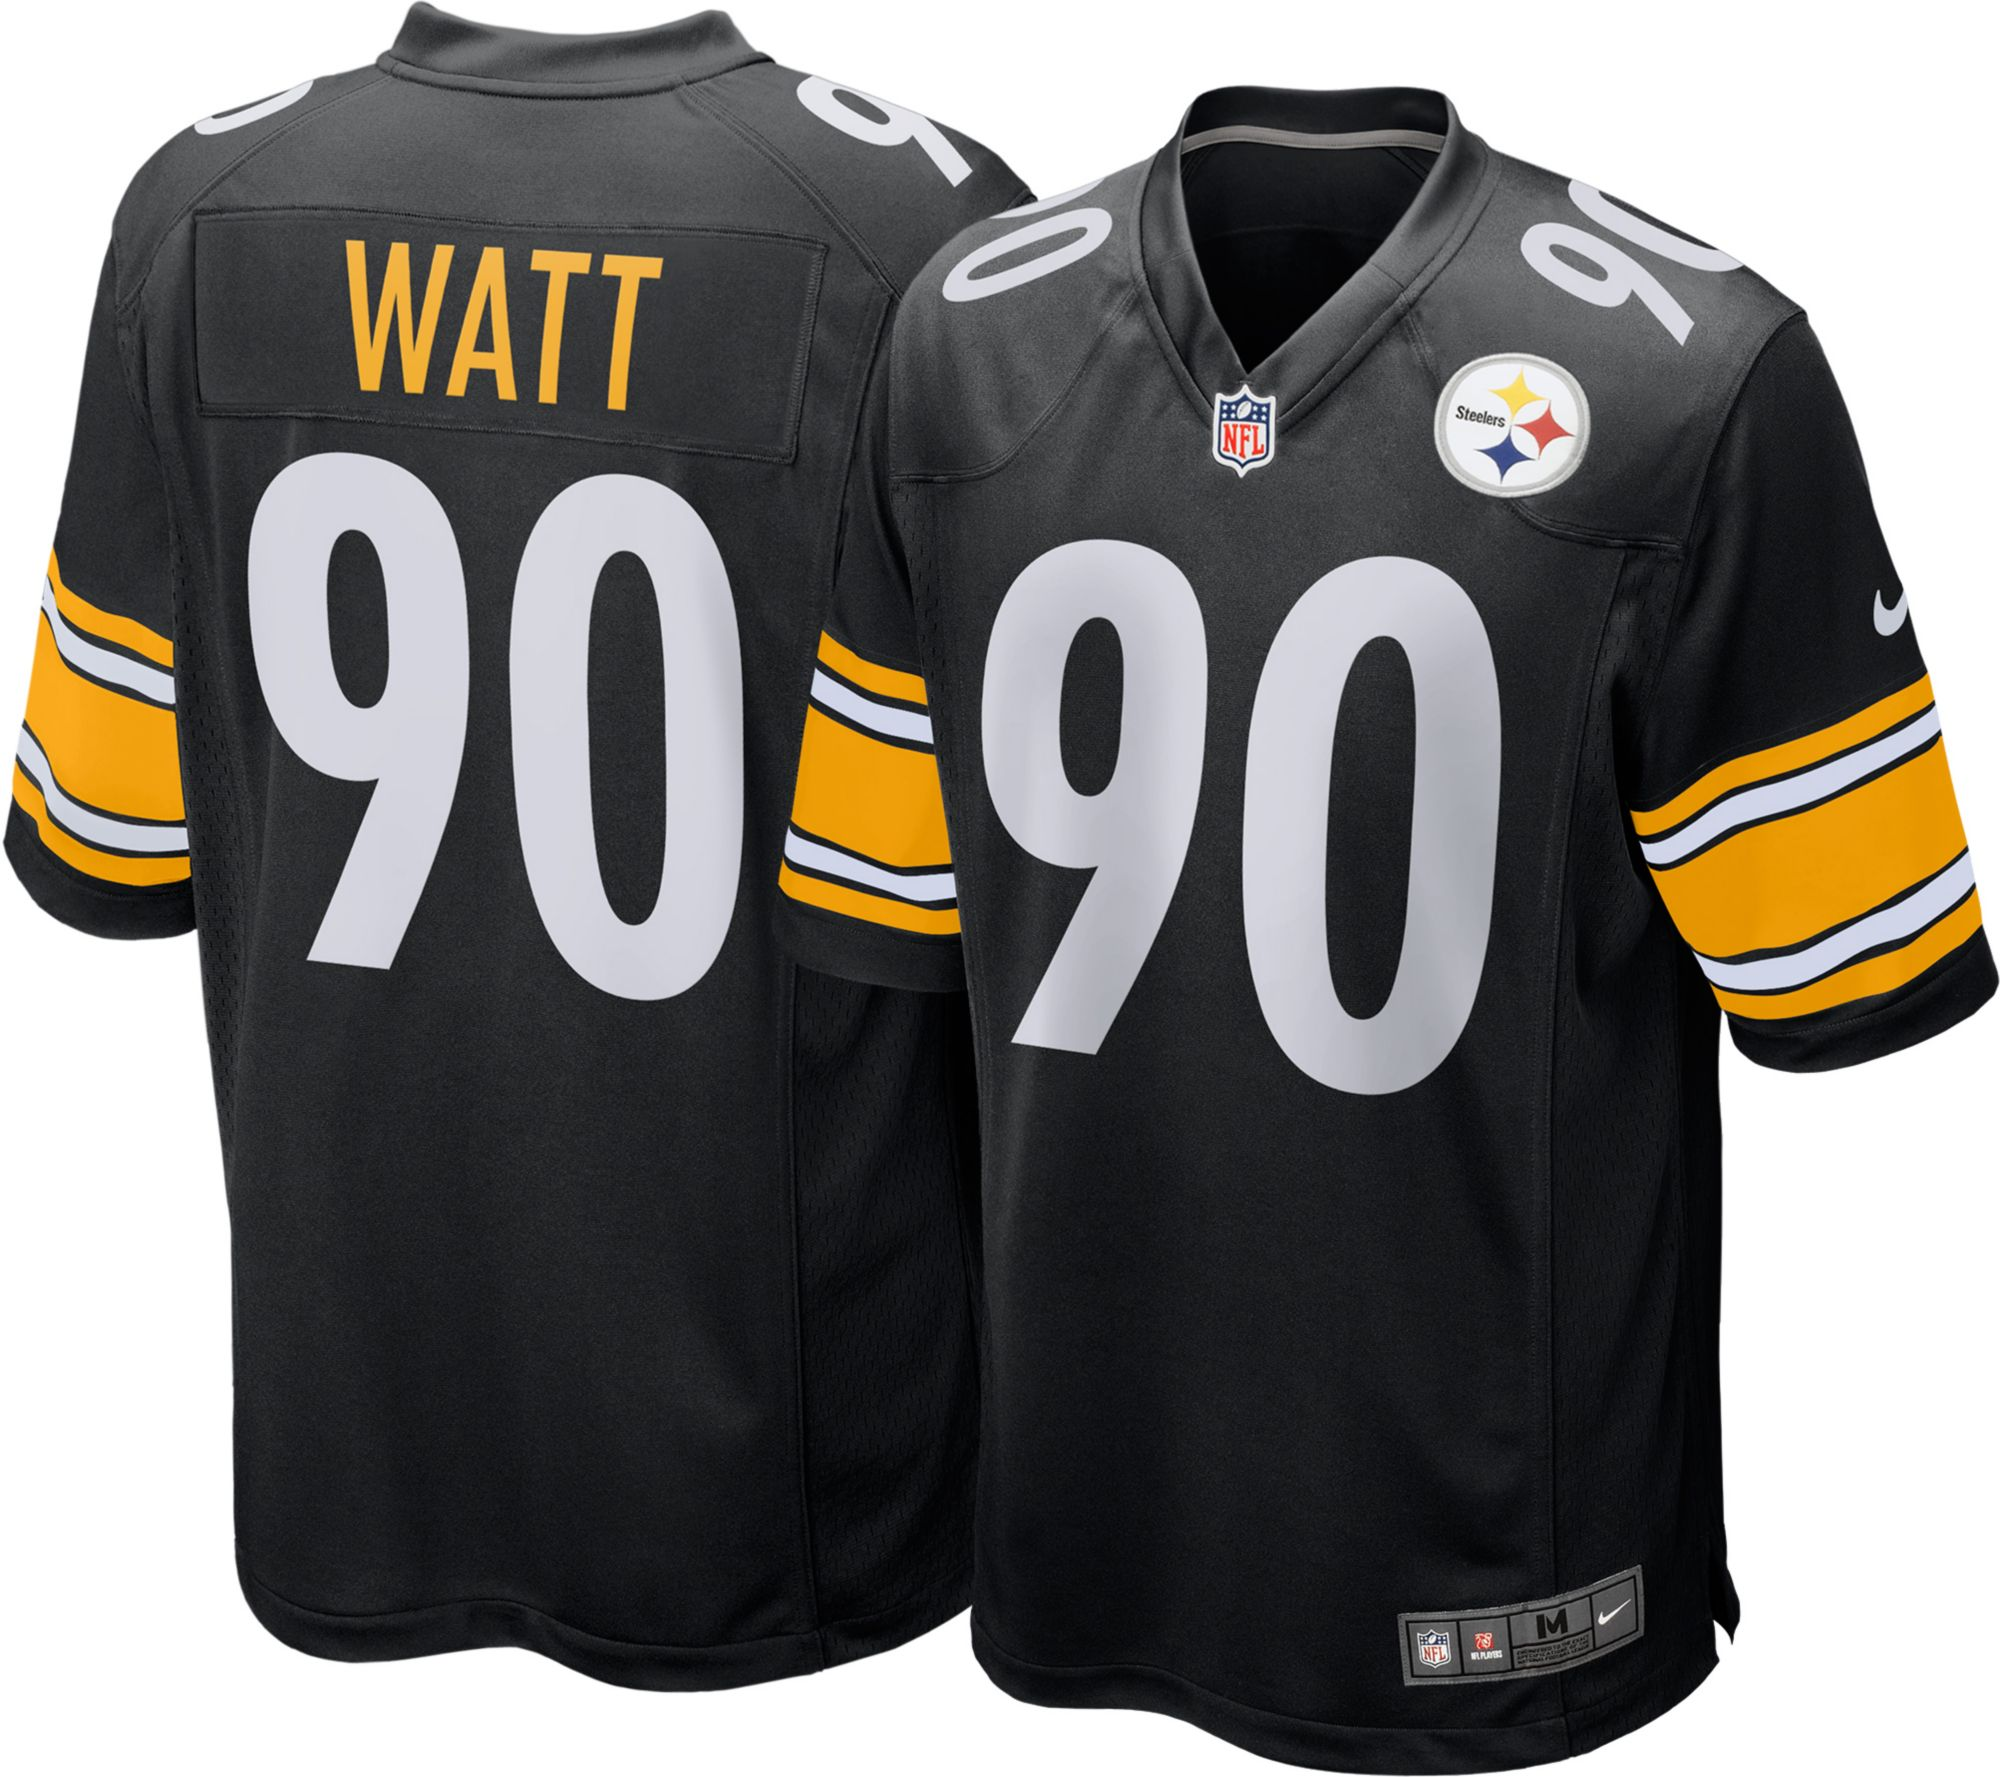 Pittsburgh Steelers Shazier >> ryan shazier 50 jersey amazon nfl sale